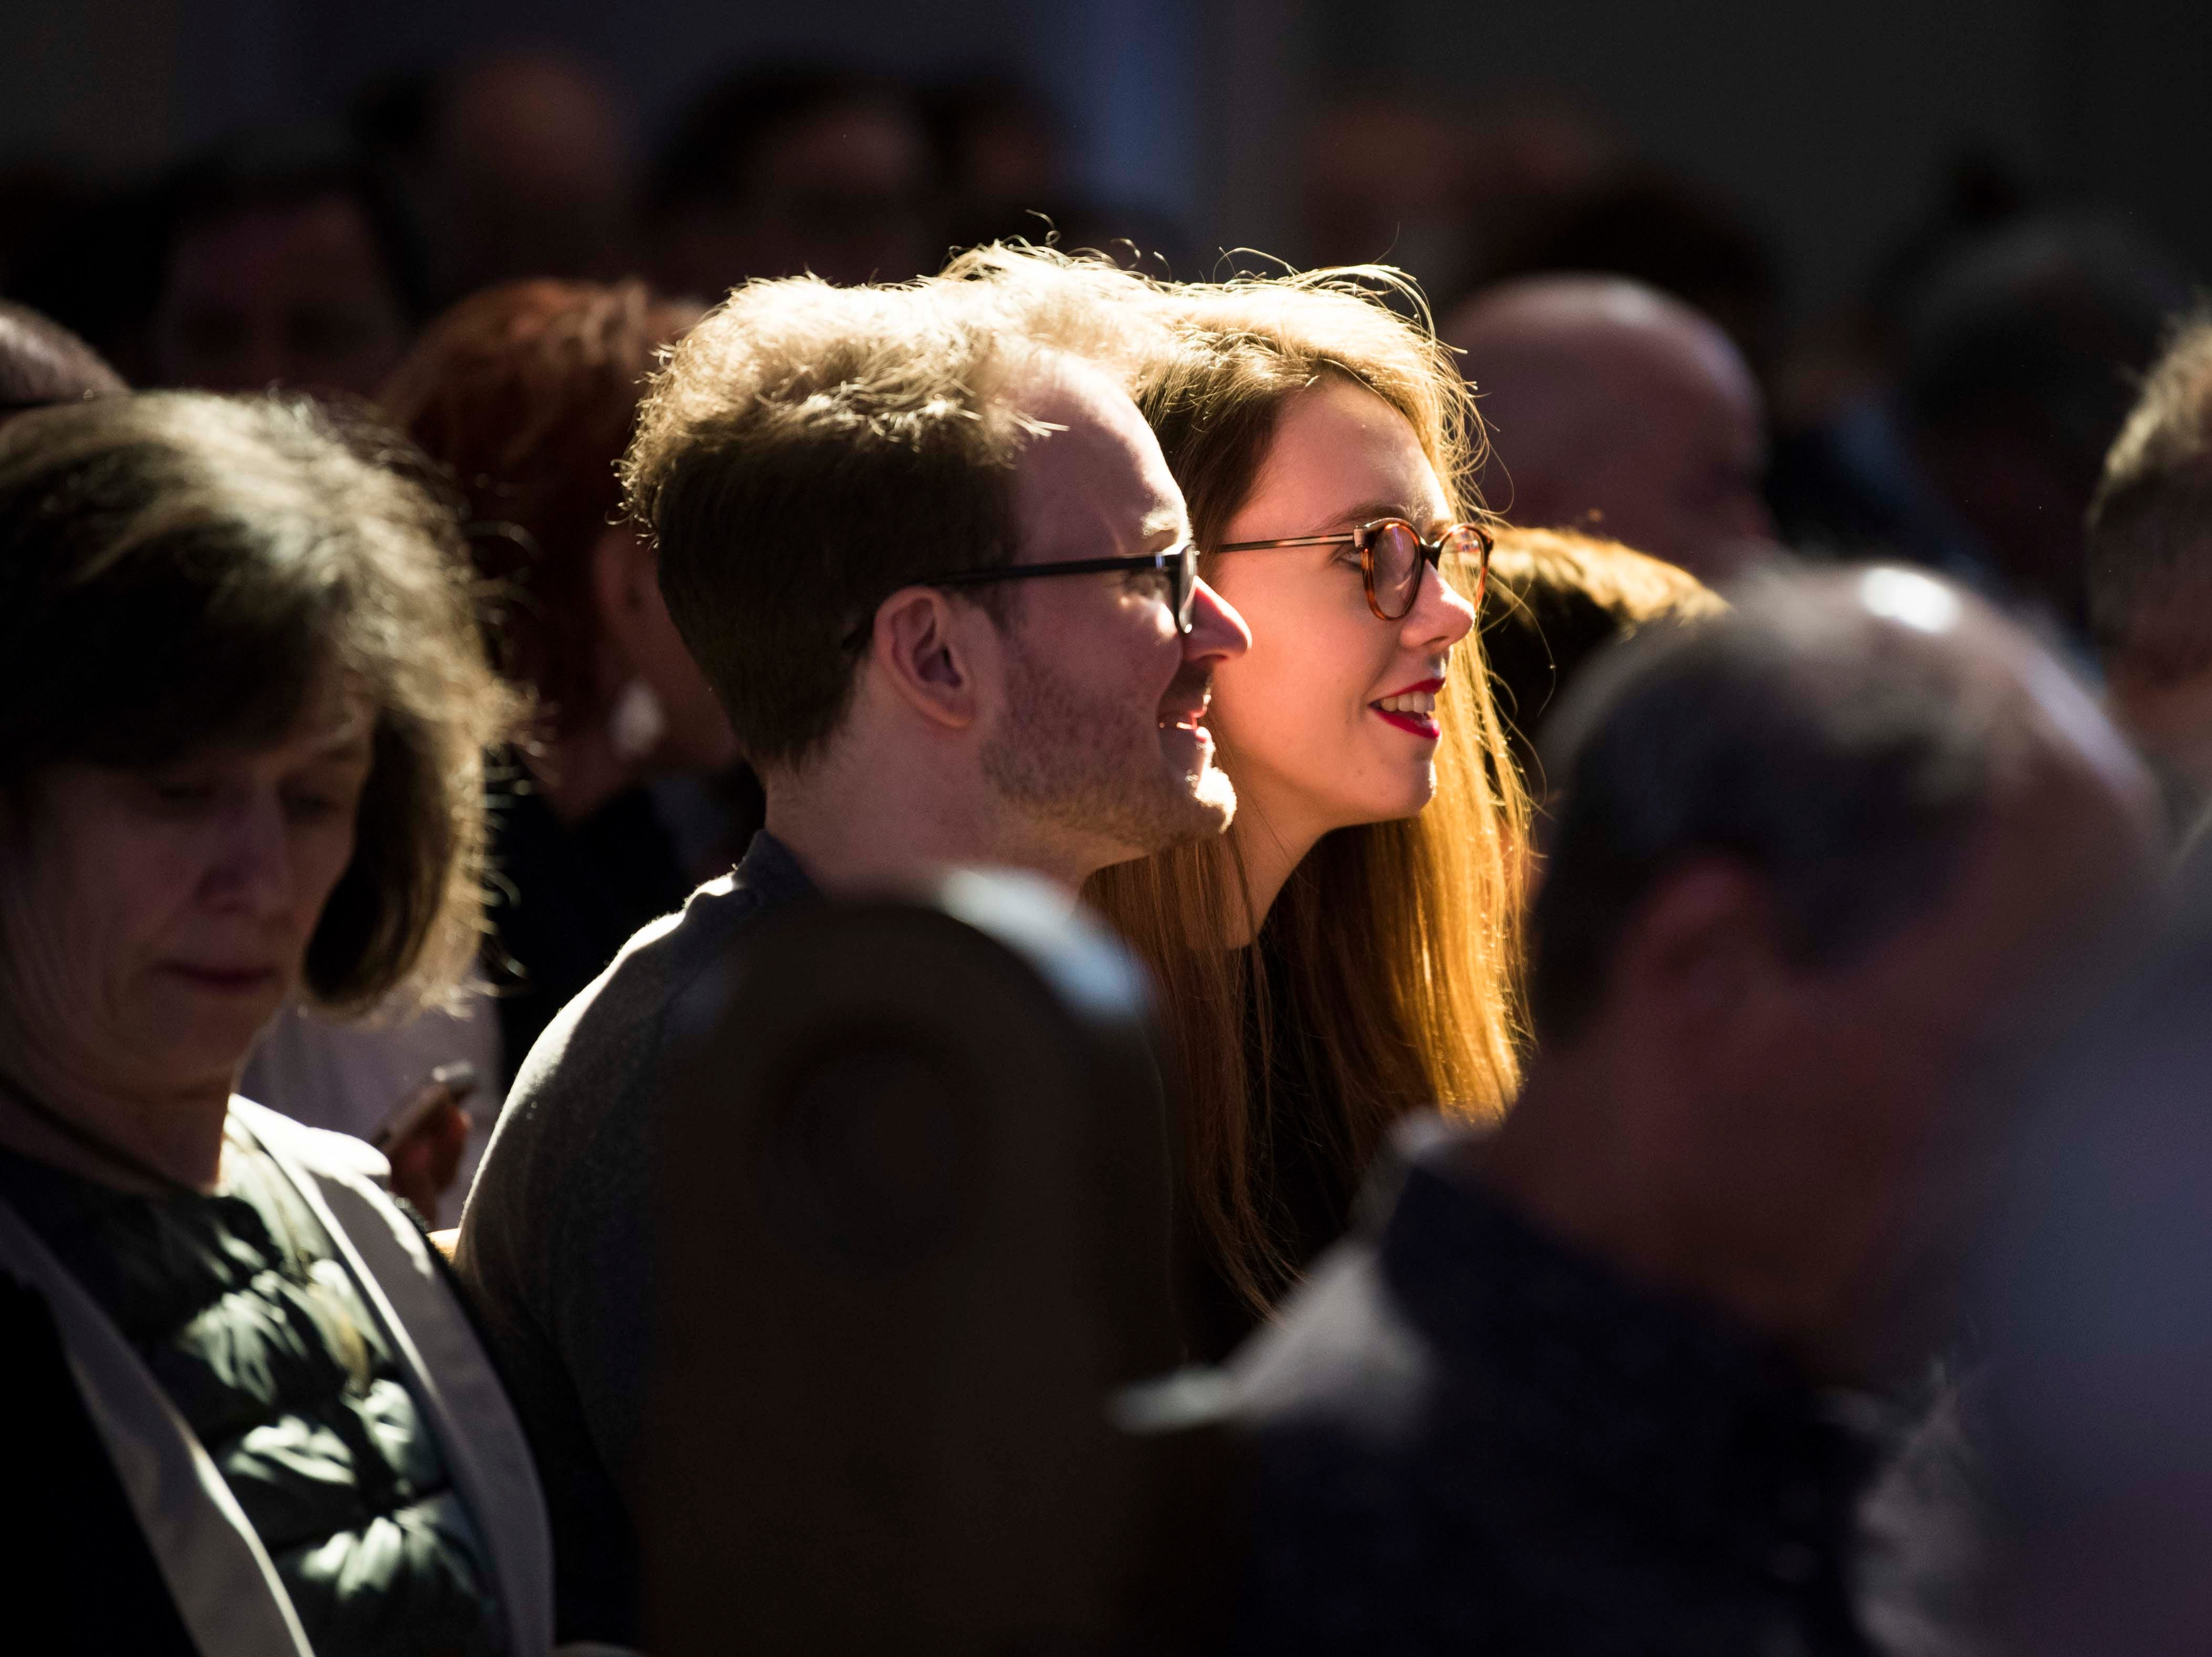 Attendees sit in light  at St. John's Episcopal Cathedral before listening to the Shai Maestro Trio during Big Ears Music Festival in downtown Knoxville Friday, March 22, 2019.